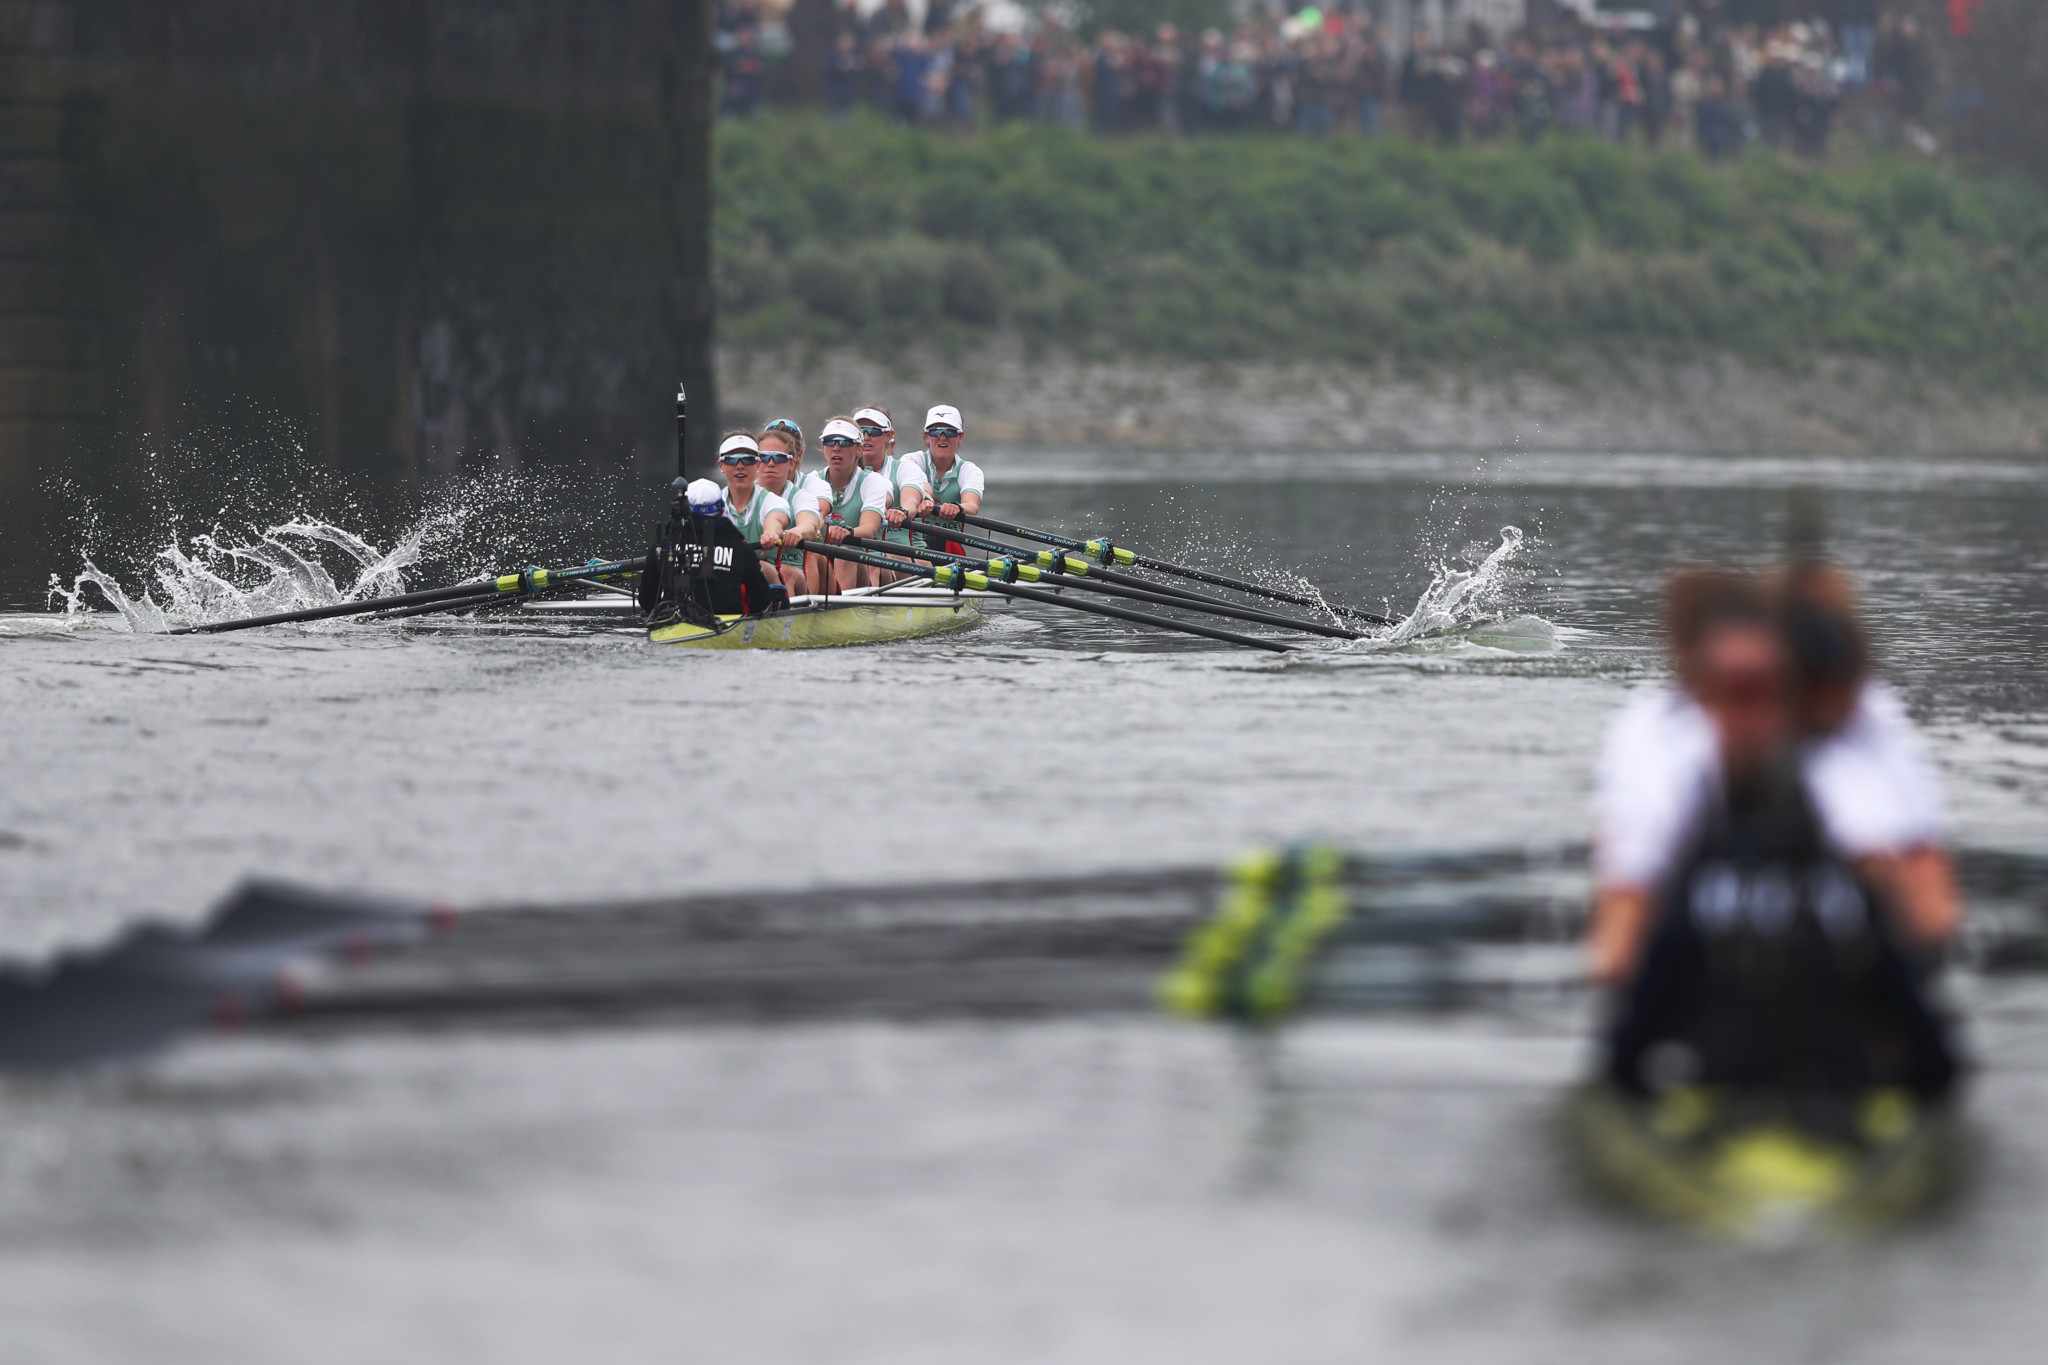 Next year's Boat Race will be held in Ely ©Getty Images